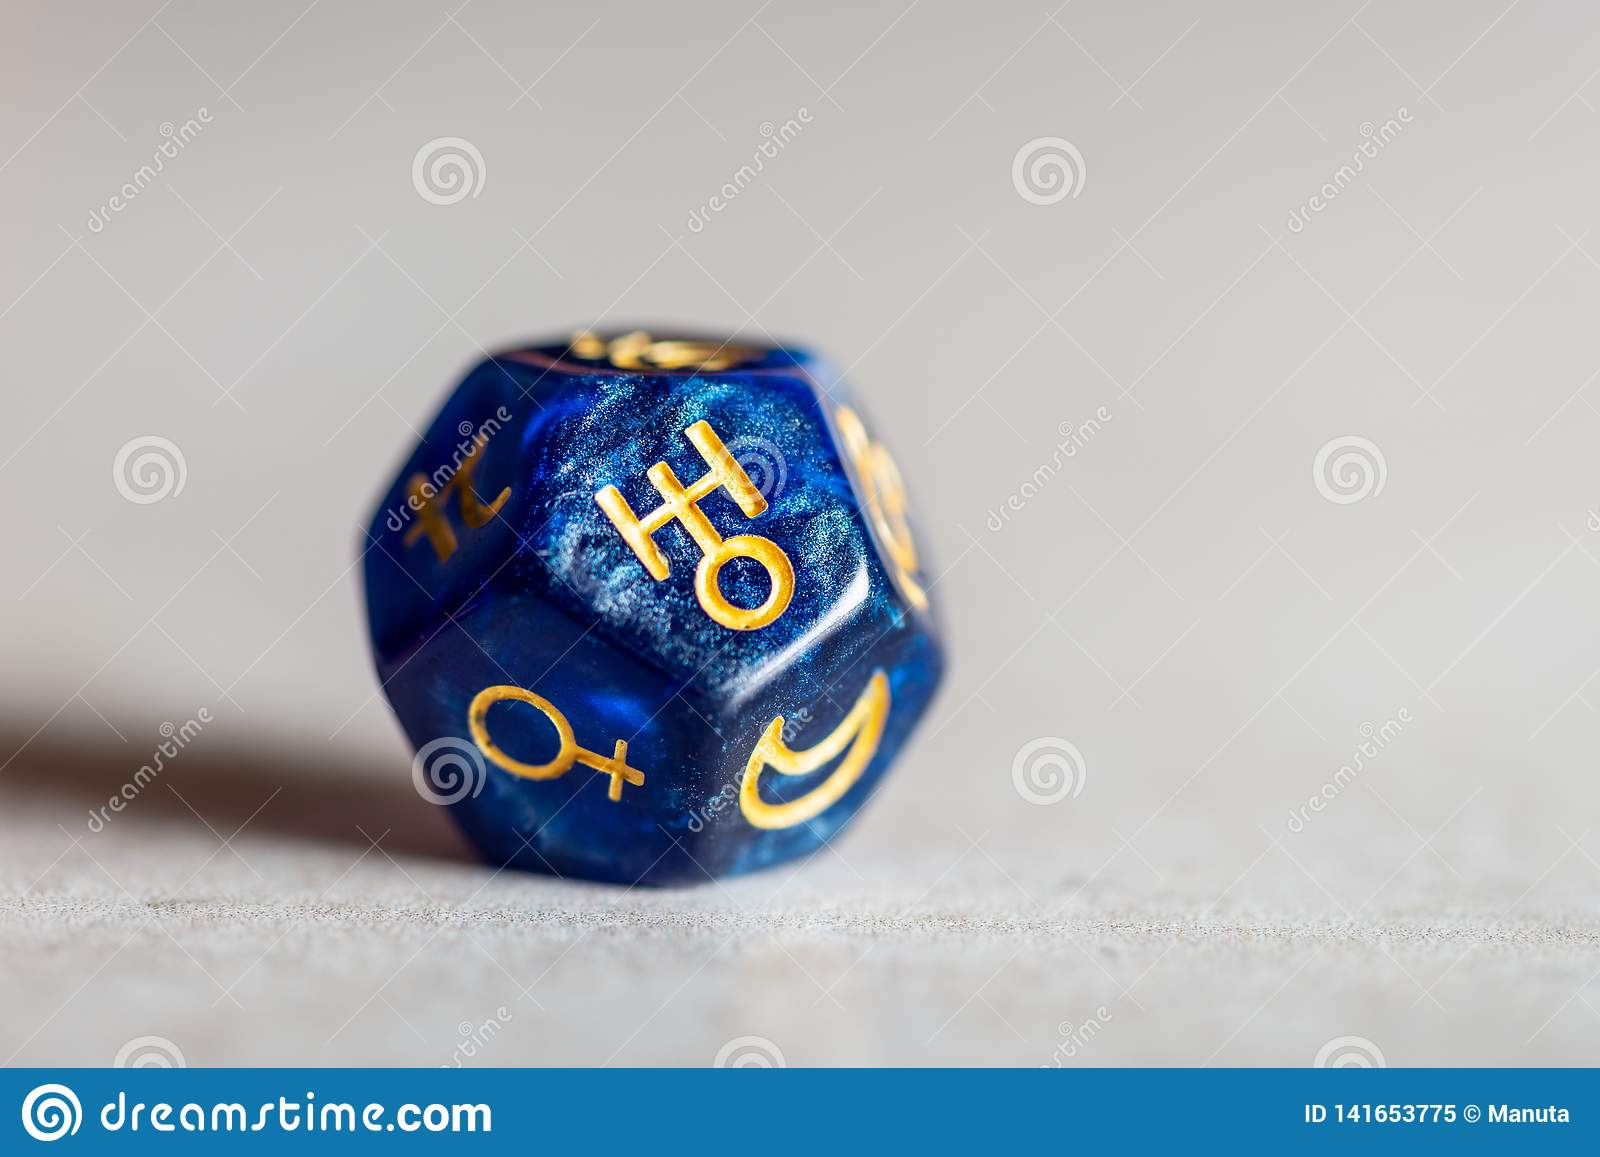 Astrology Dice with symbol of the planet Saturn